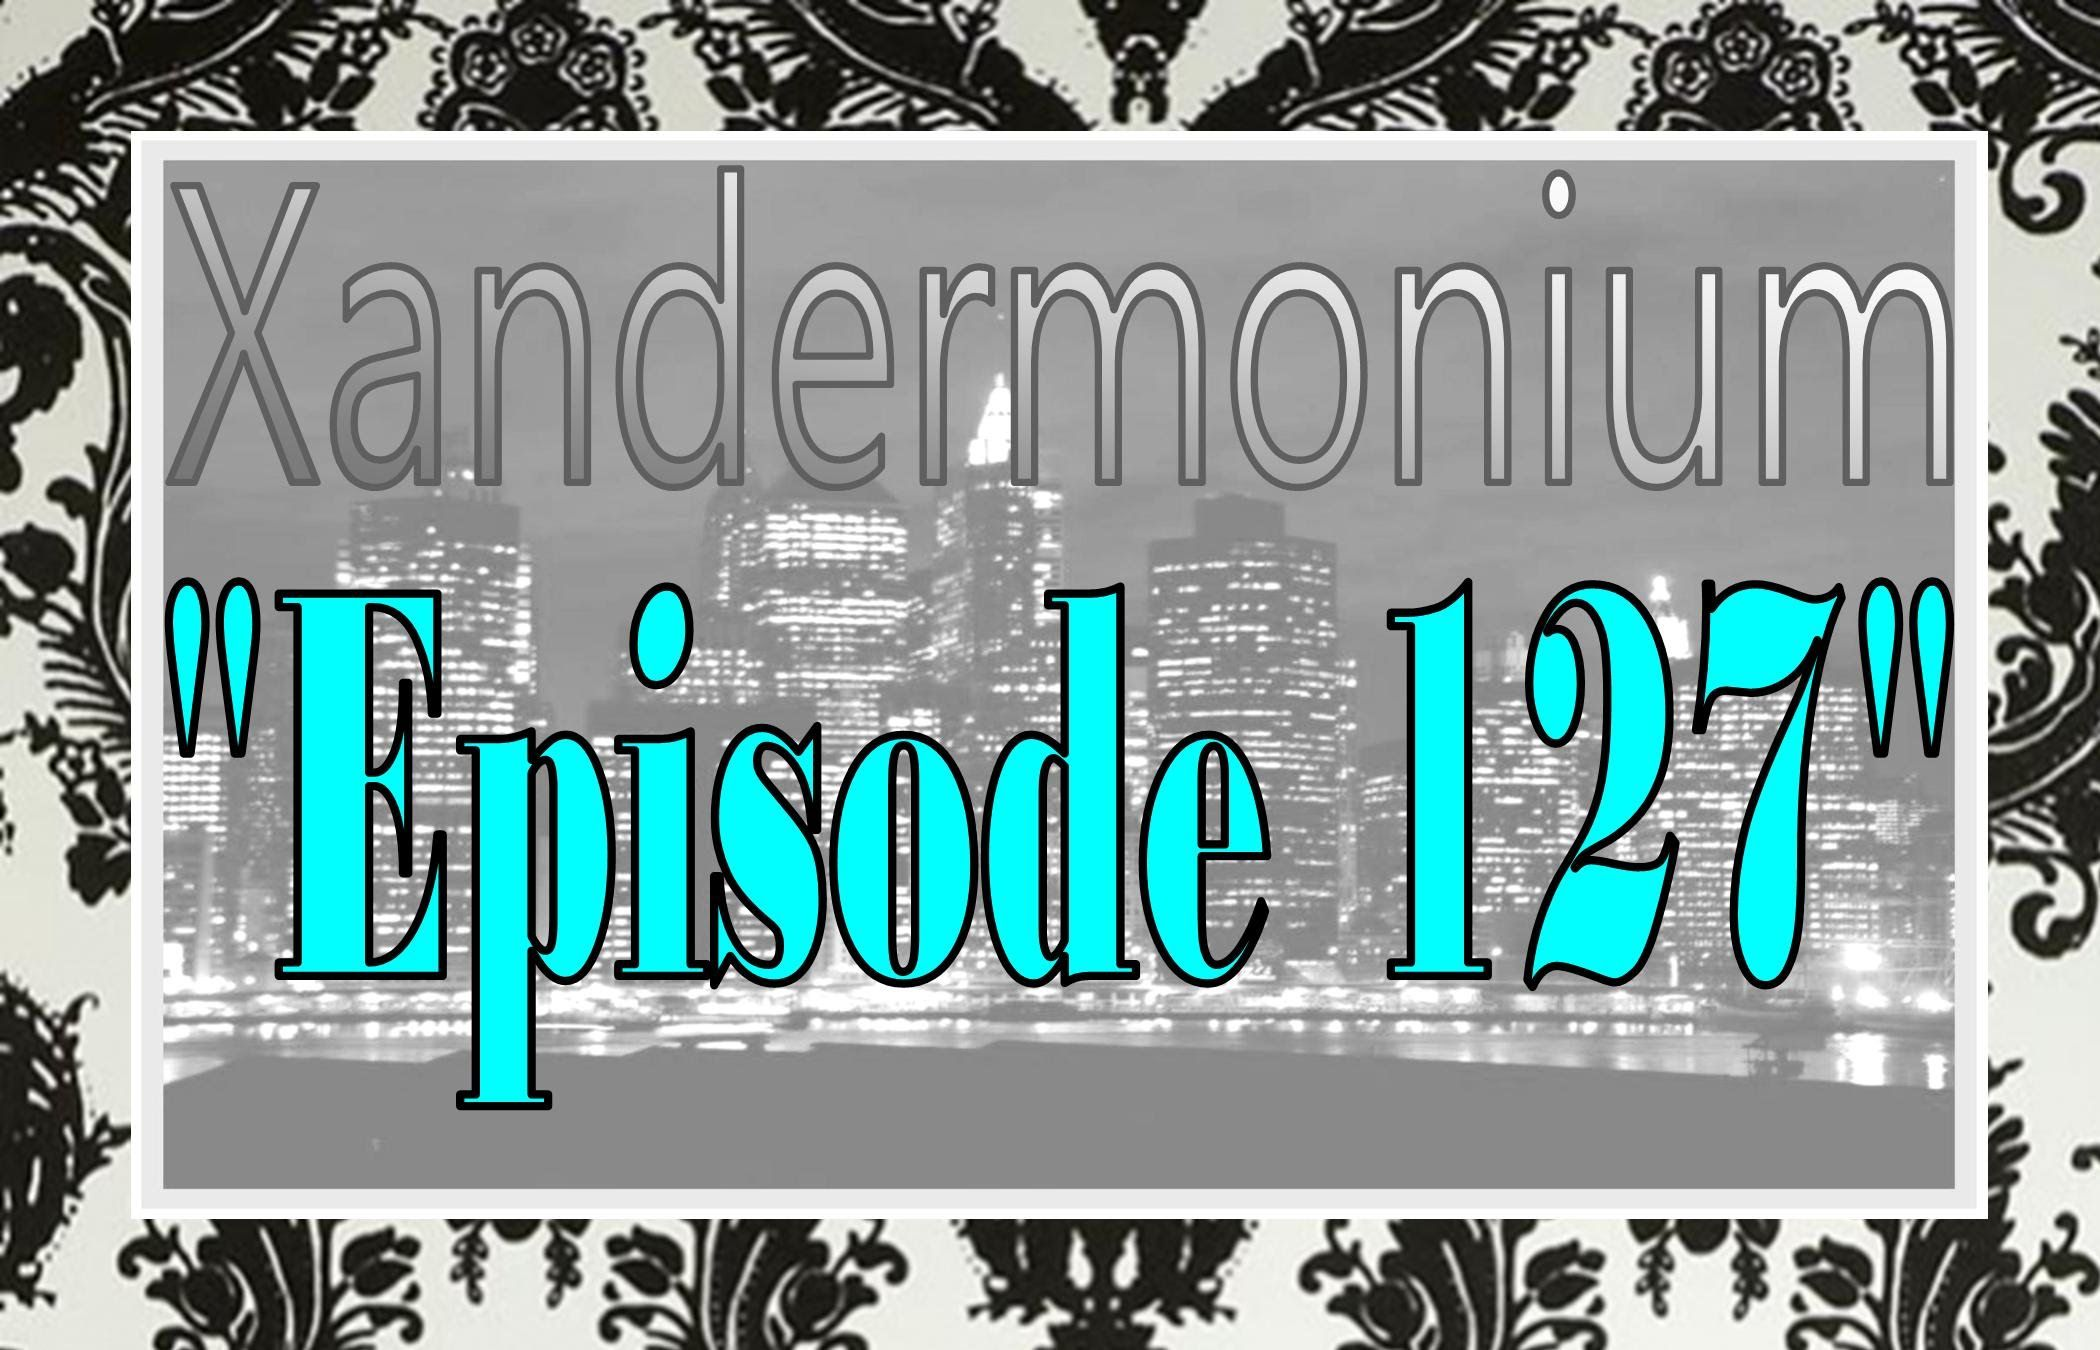 If you missed Epi 127 of #Xandermonium you can check it out here. Thanks to Juan and Patrick Duffy from 2 Dads + 4 Kids. Next week Anthony Losacco & Sarah Boyles join us, http://tobtr.com/s/7606053